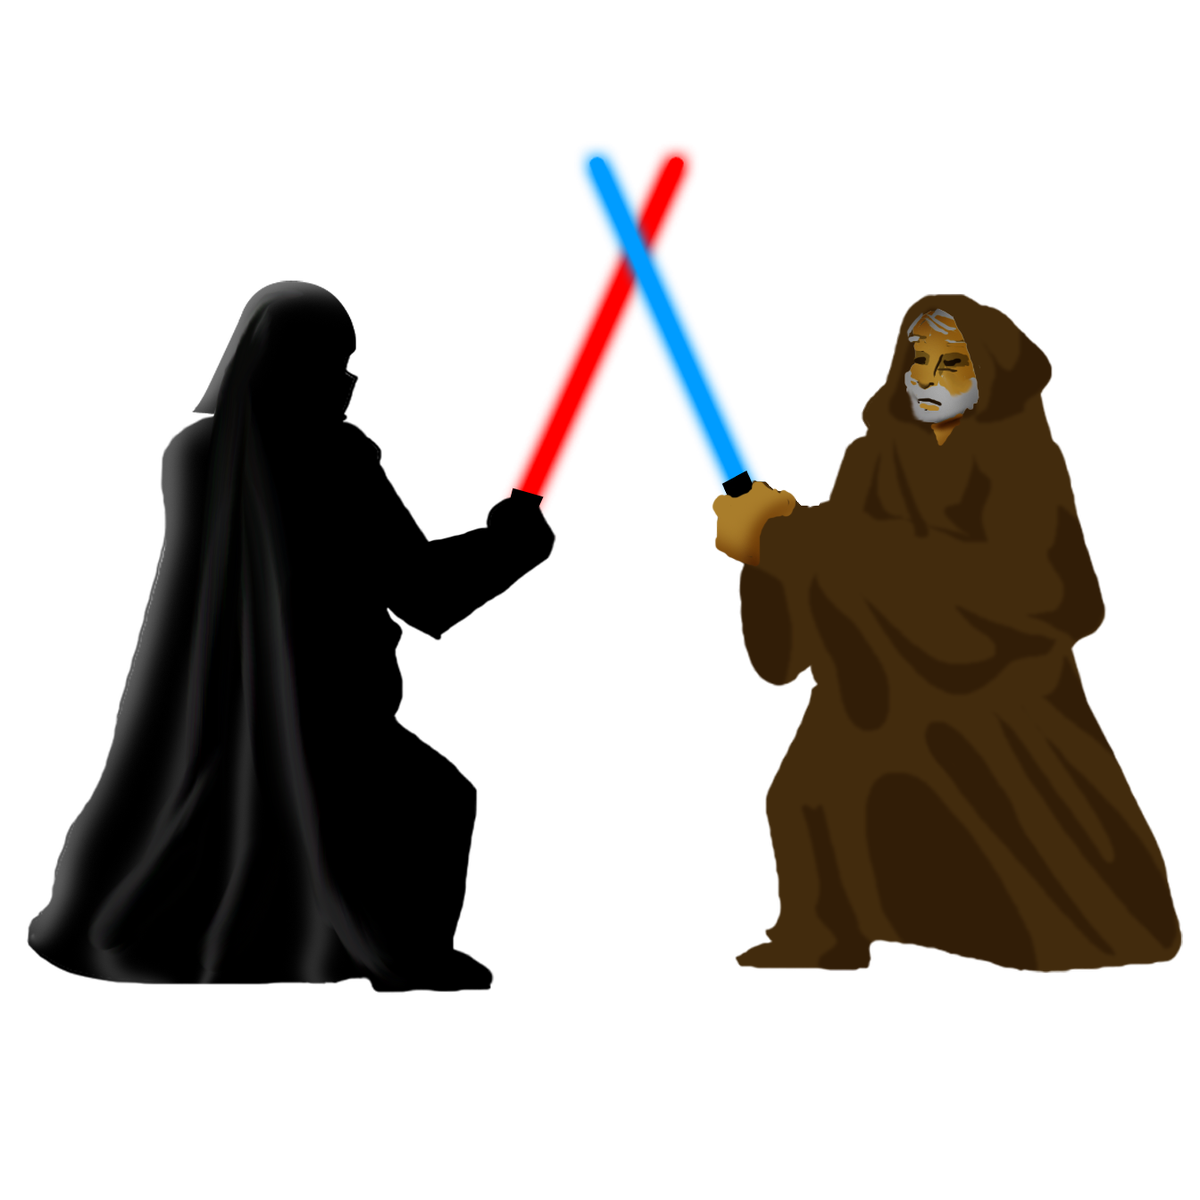 Darth vader clipart happy. Emotion on twitter old